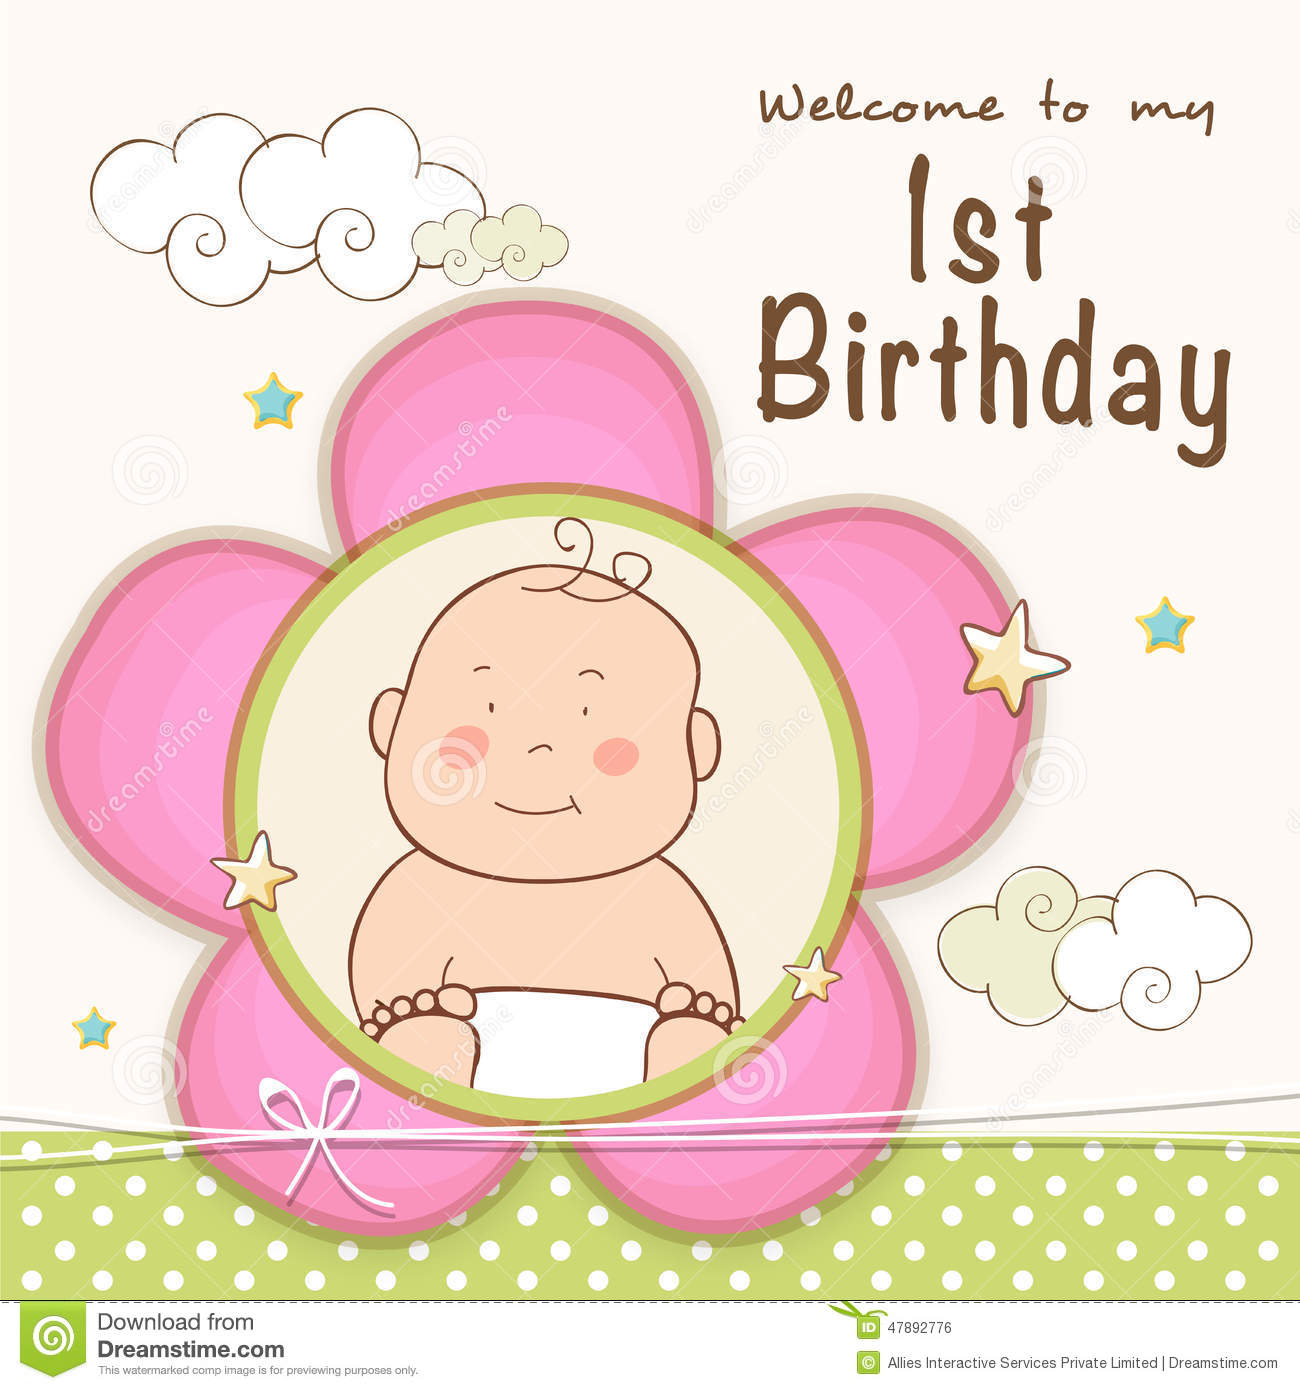 first birthday invitation cards designs free ; st-birthday-invitation-card-design-kids-celebration-cute-baby-47892776